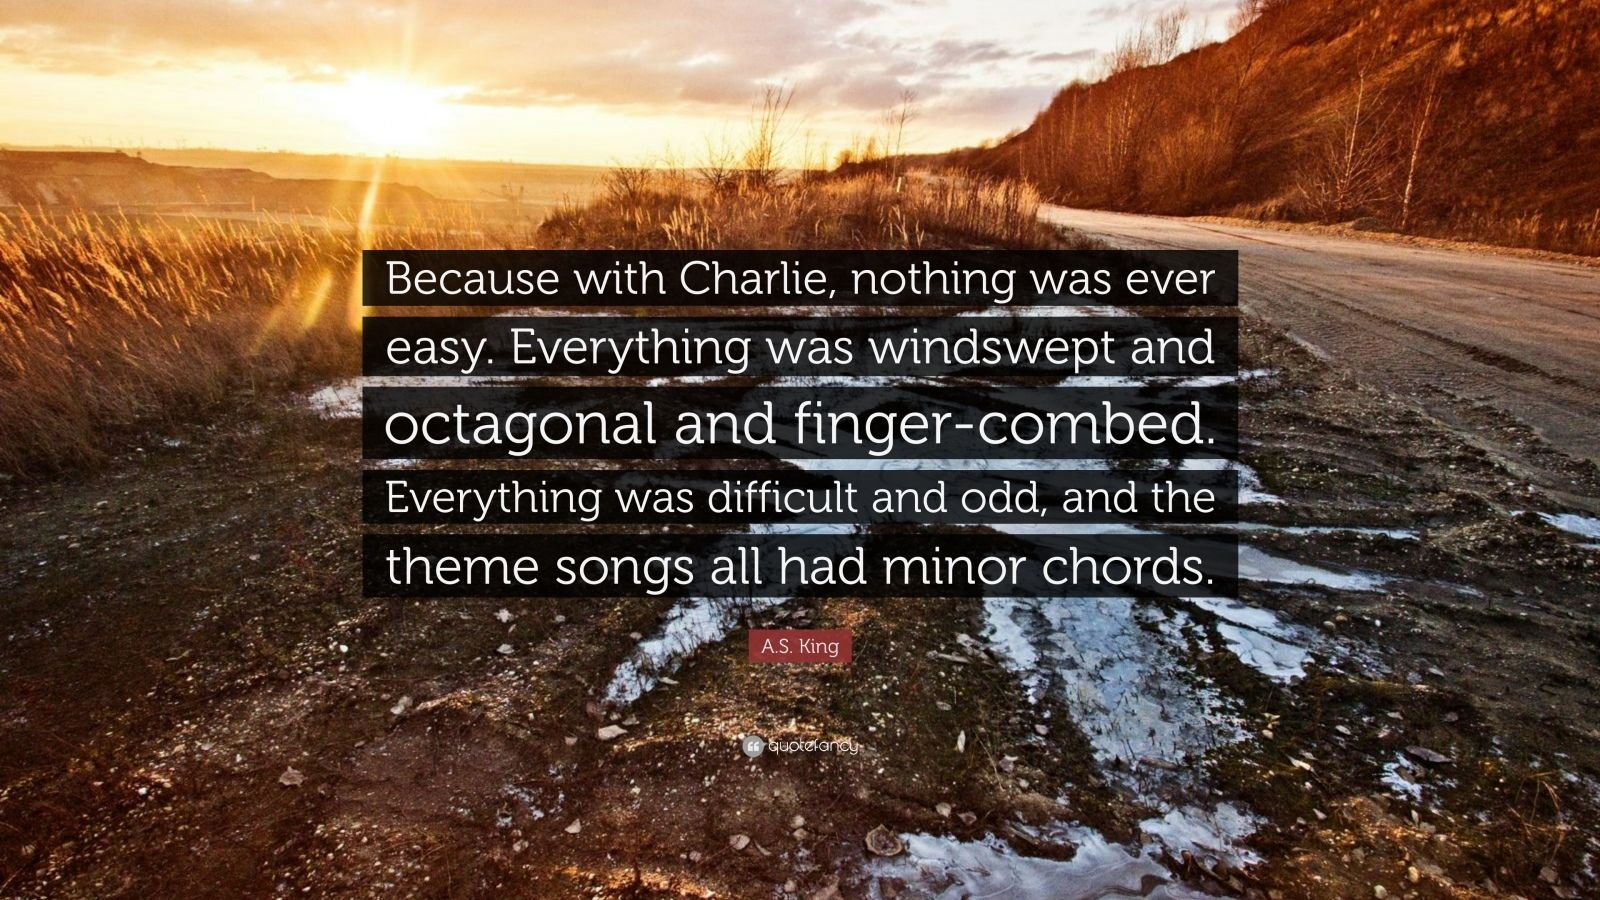 """A.S. King Quote: """"Because with Charlie, nothing was ever easy. Everything was windswept and octagonal and finger-combed. Everything was difficult and odd, and the theme songs all had minor chords."""""""